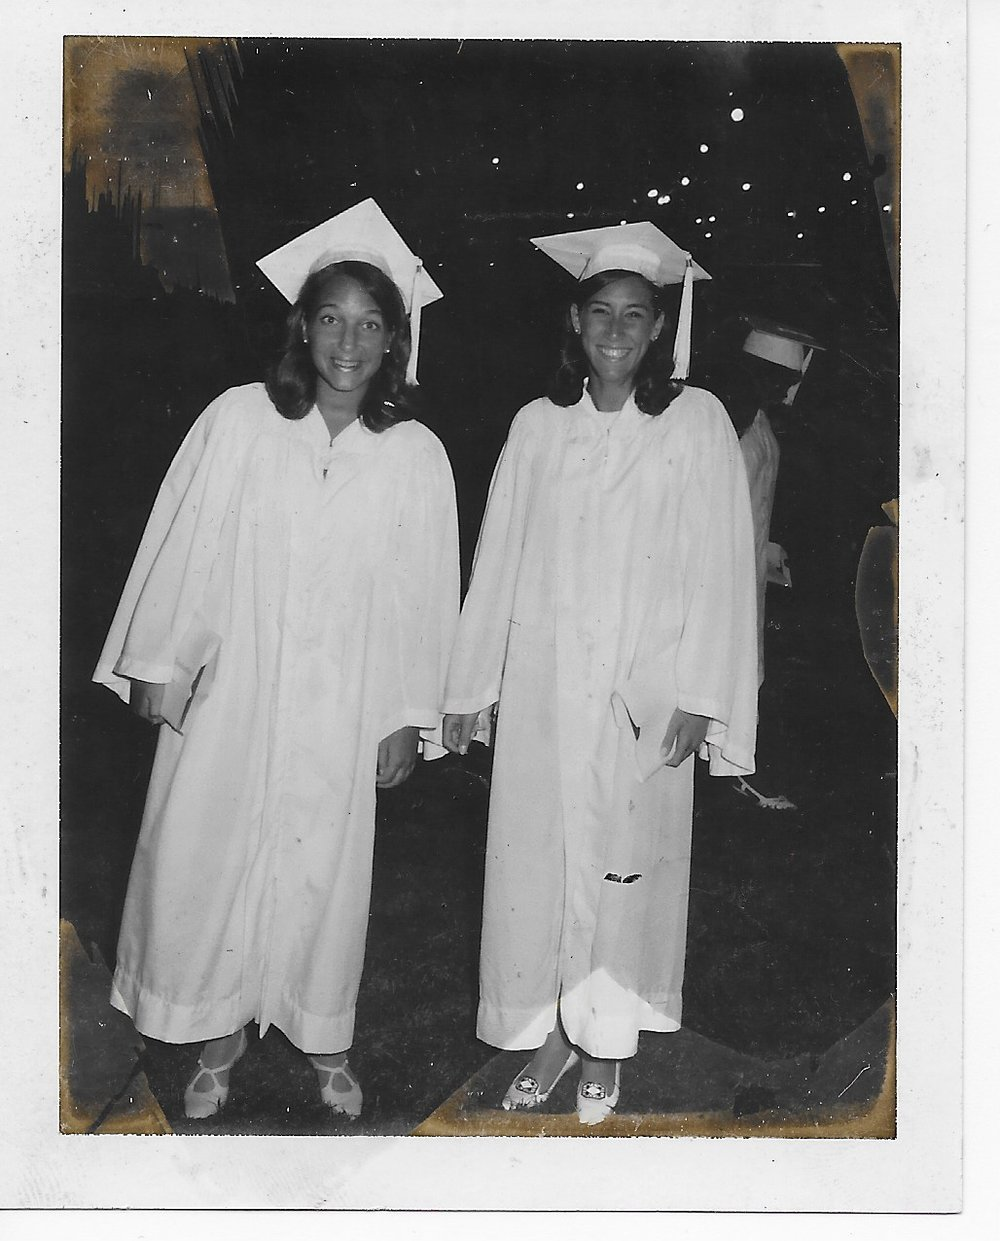 Nancie Brecher and Amy Maxin at our graduation, 1967